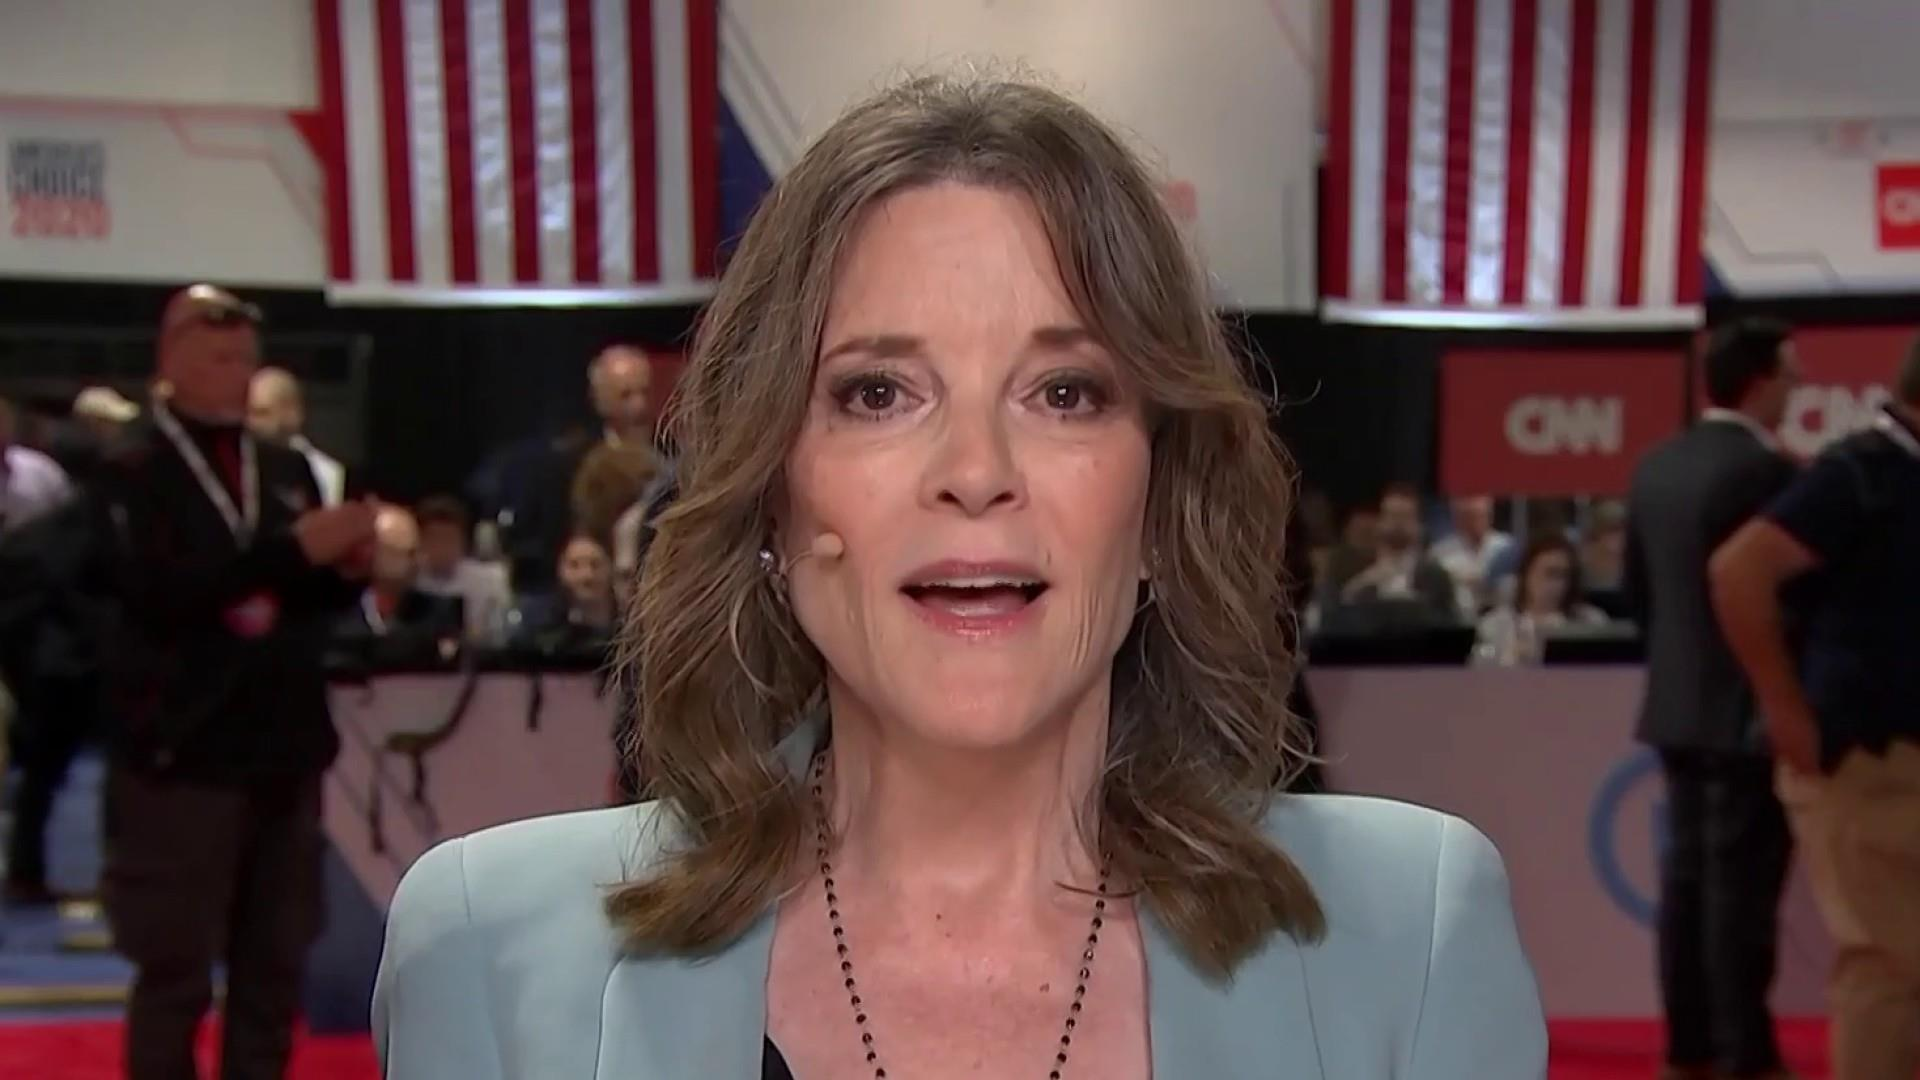 Marianne Williamson apologizes for calling depression 'a scam'